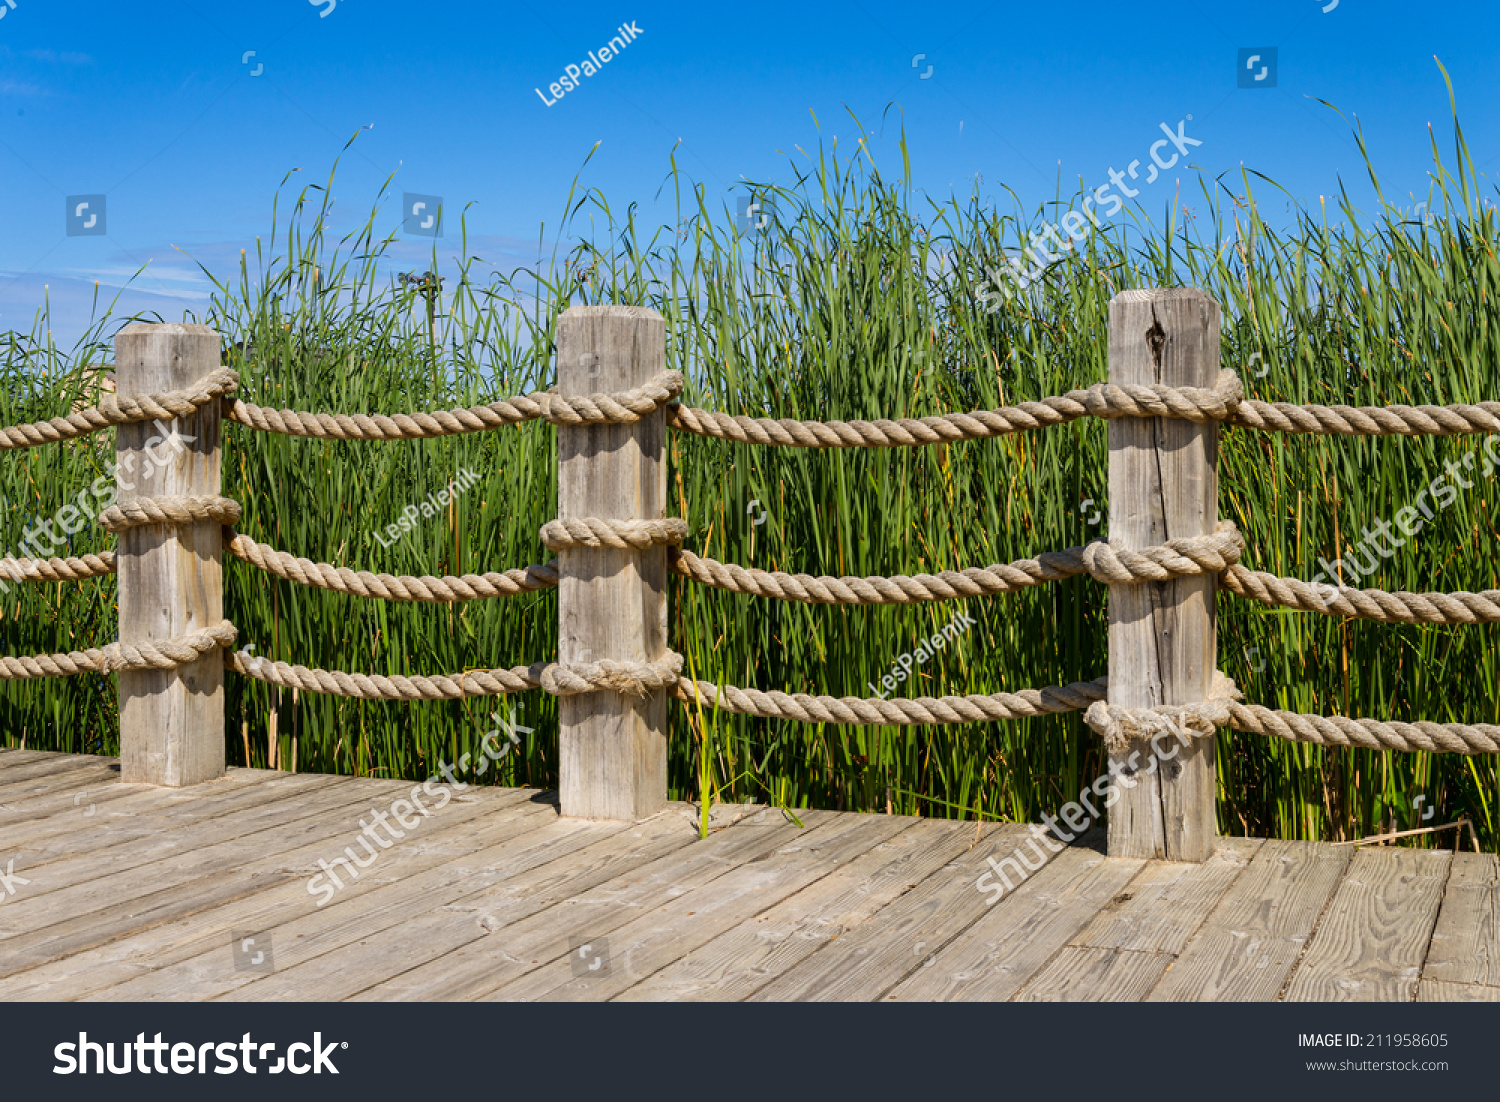 Rope Wooden Post Banister Railing Stock Photo 211958605